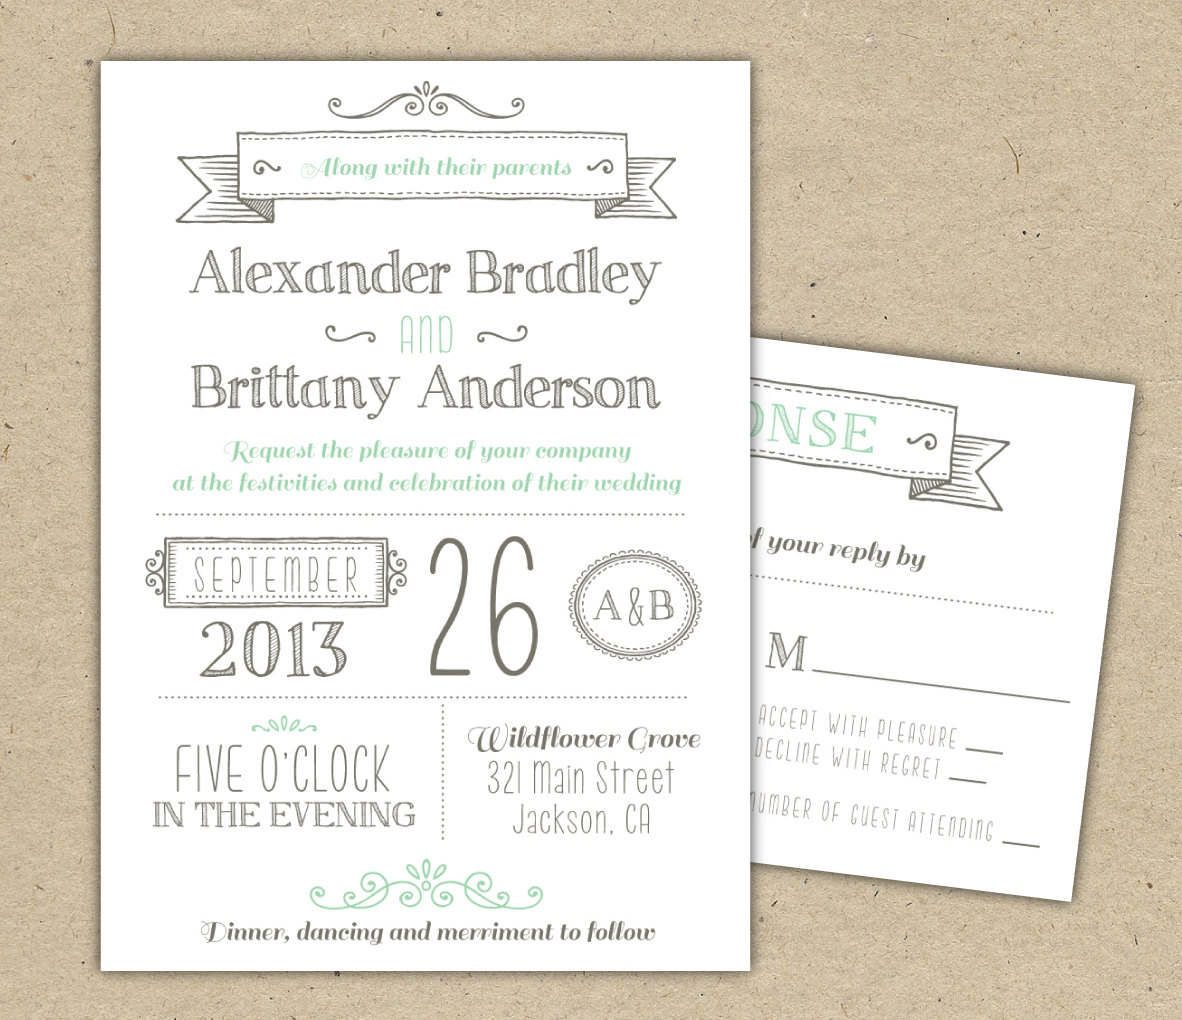 Wedding Invitations Template Free Download | Card Designs ...